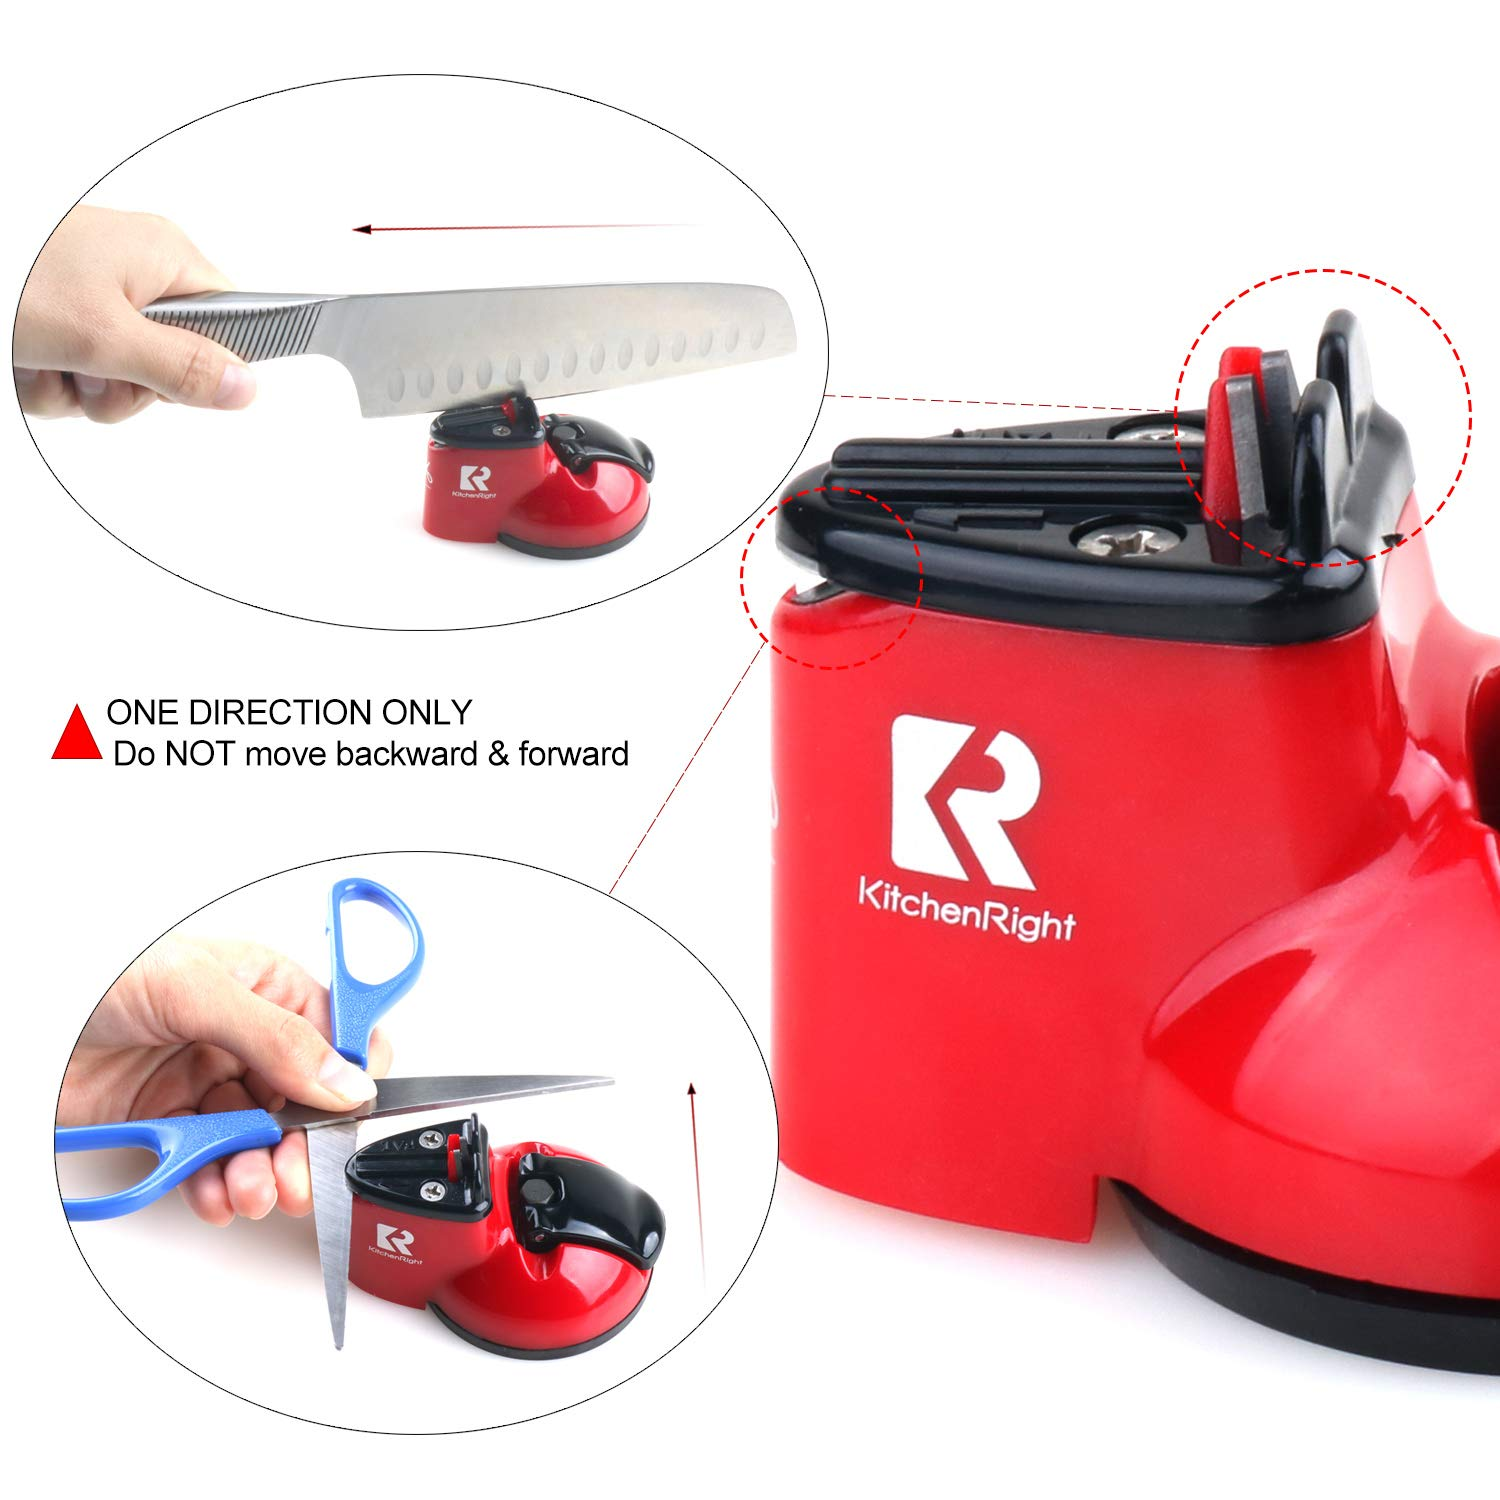 Kitchen Knife Sharpener Scissor Sharpener 2-Stage Knife & Scissor Sharpening Tool Helps Repair Camping & Hiking Precision Perfect,Calibration Easy Safe KitchenRight by KitchenRight (Image #6)